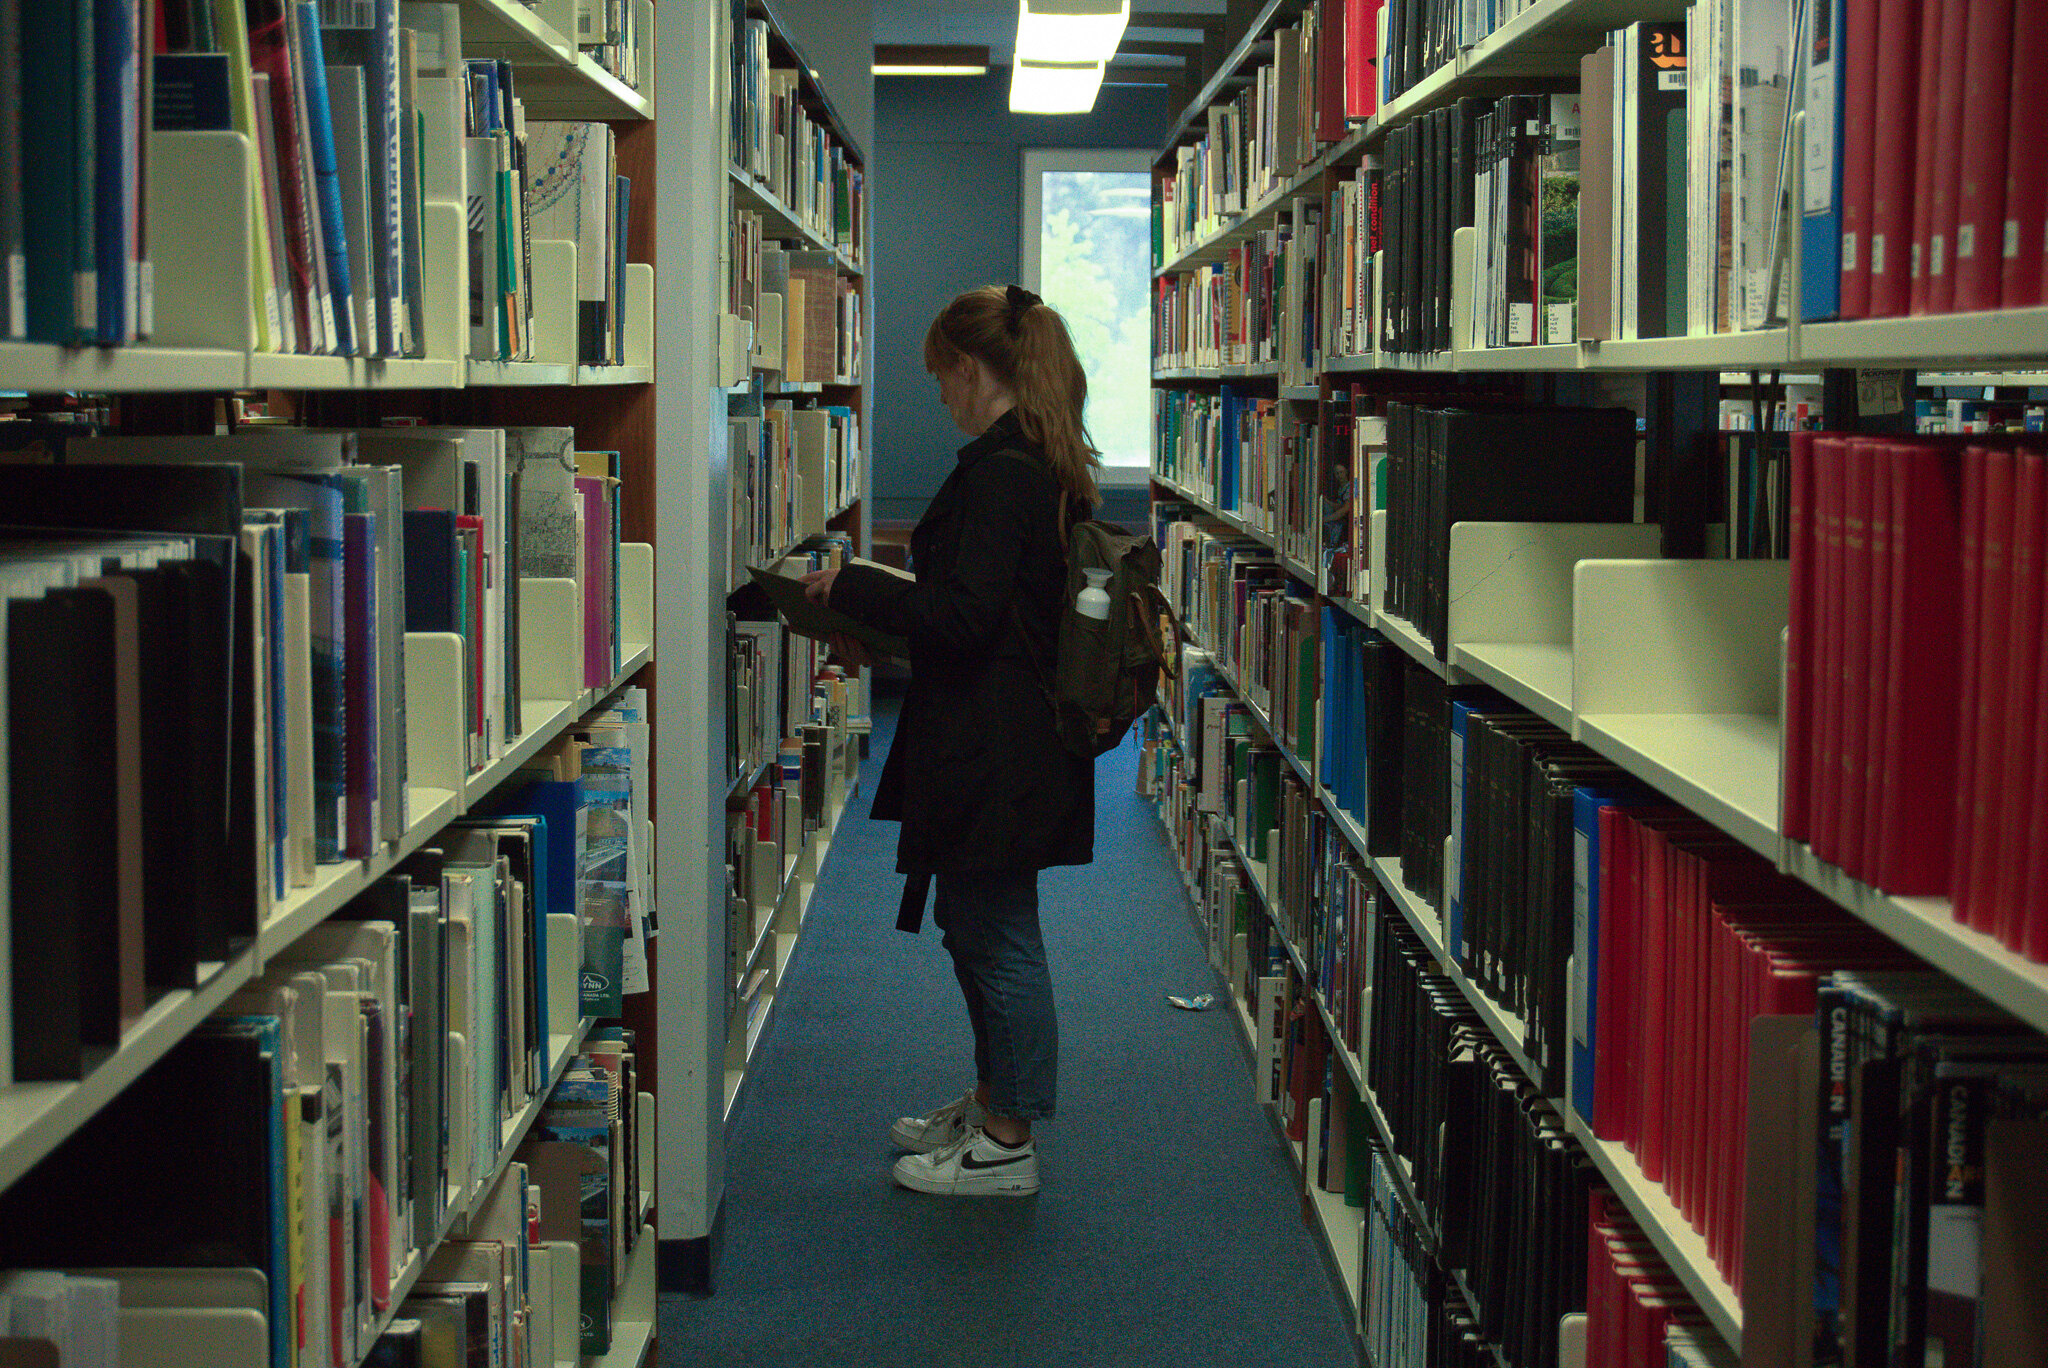 Student in library looking at books on the shelf